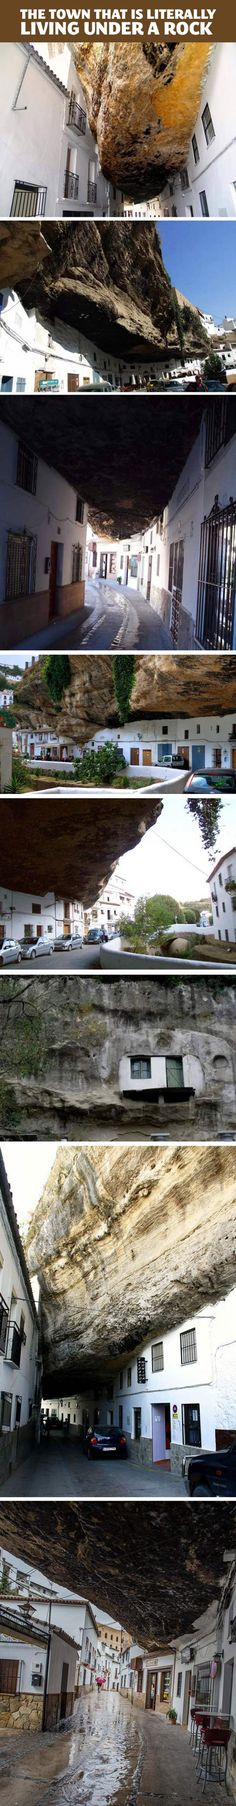 Welcome to the town of Setenil de las Bodegas in Spain where 3,000 of its inhabitants literally live underneath a rock. The town sits along a narrow river gorge weather-beaten by the Rio Trejo River, with many of the houses built into and under the walls of the gorge itself.